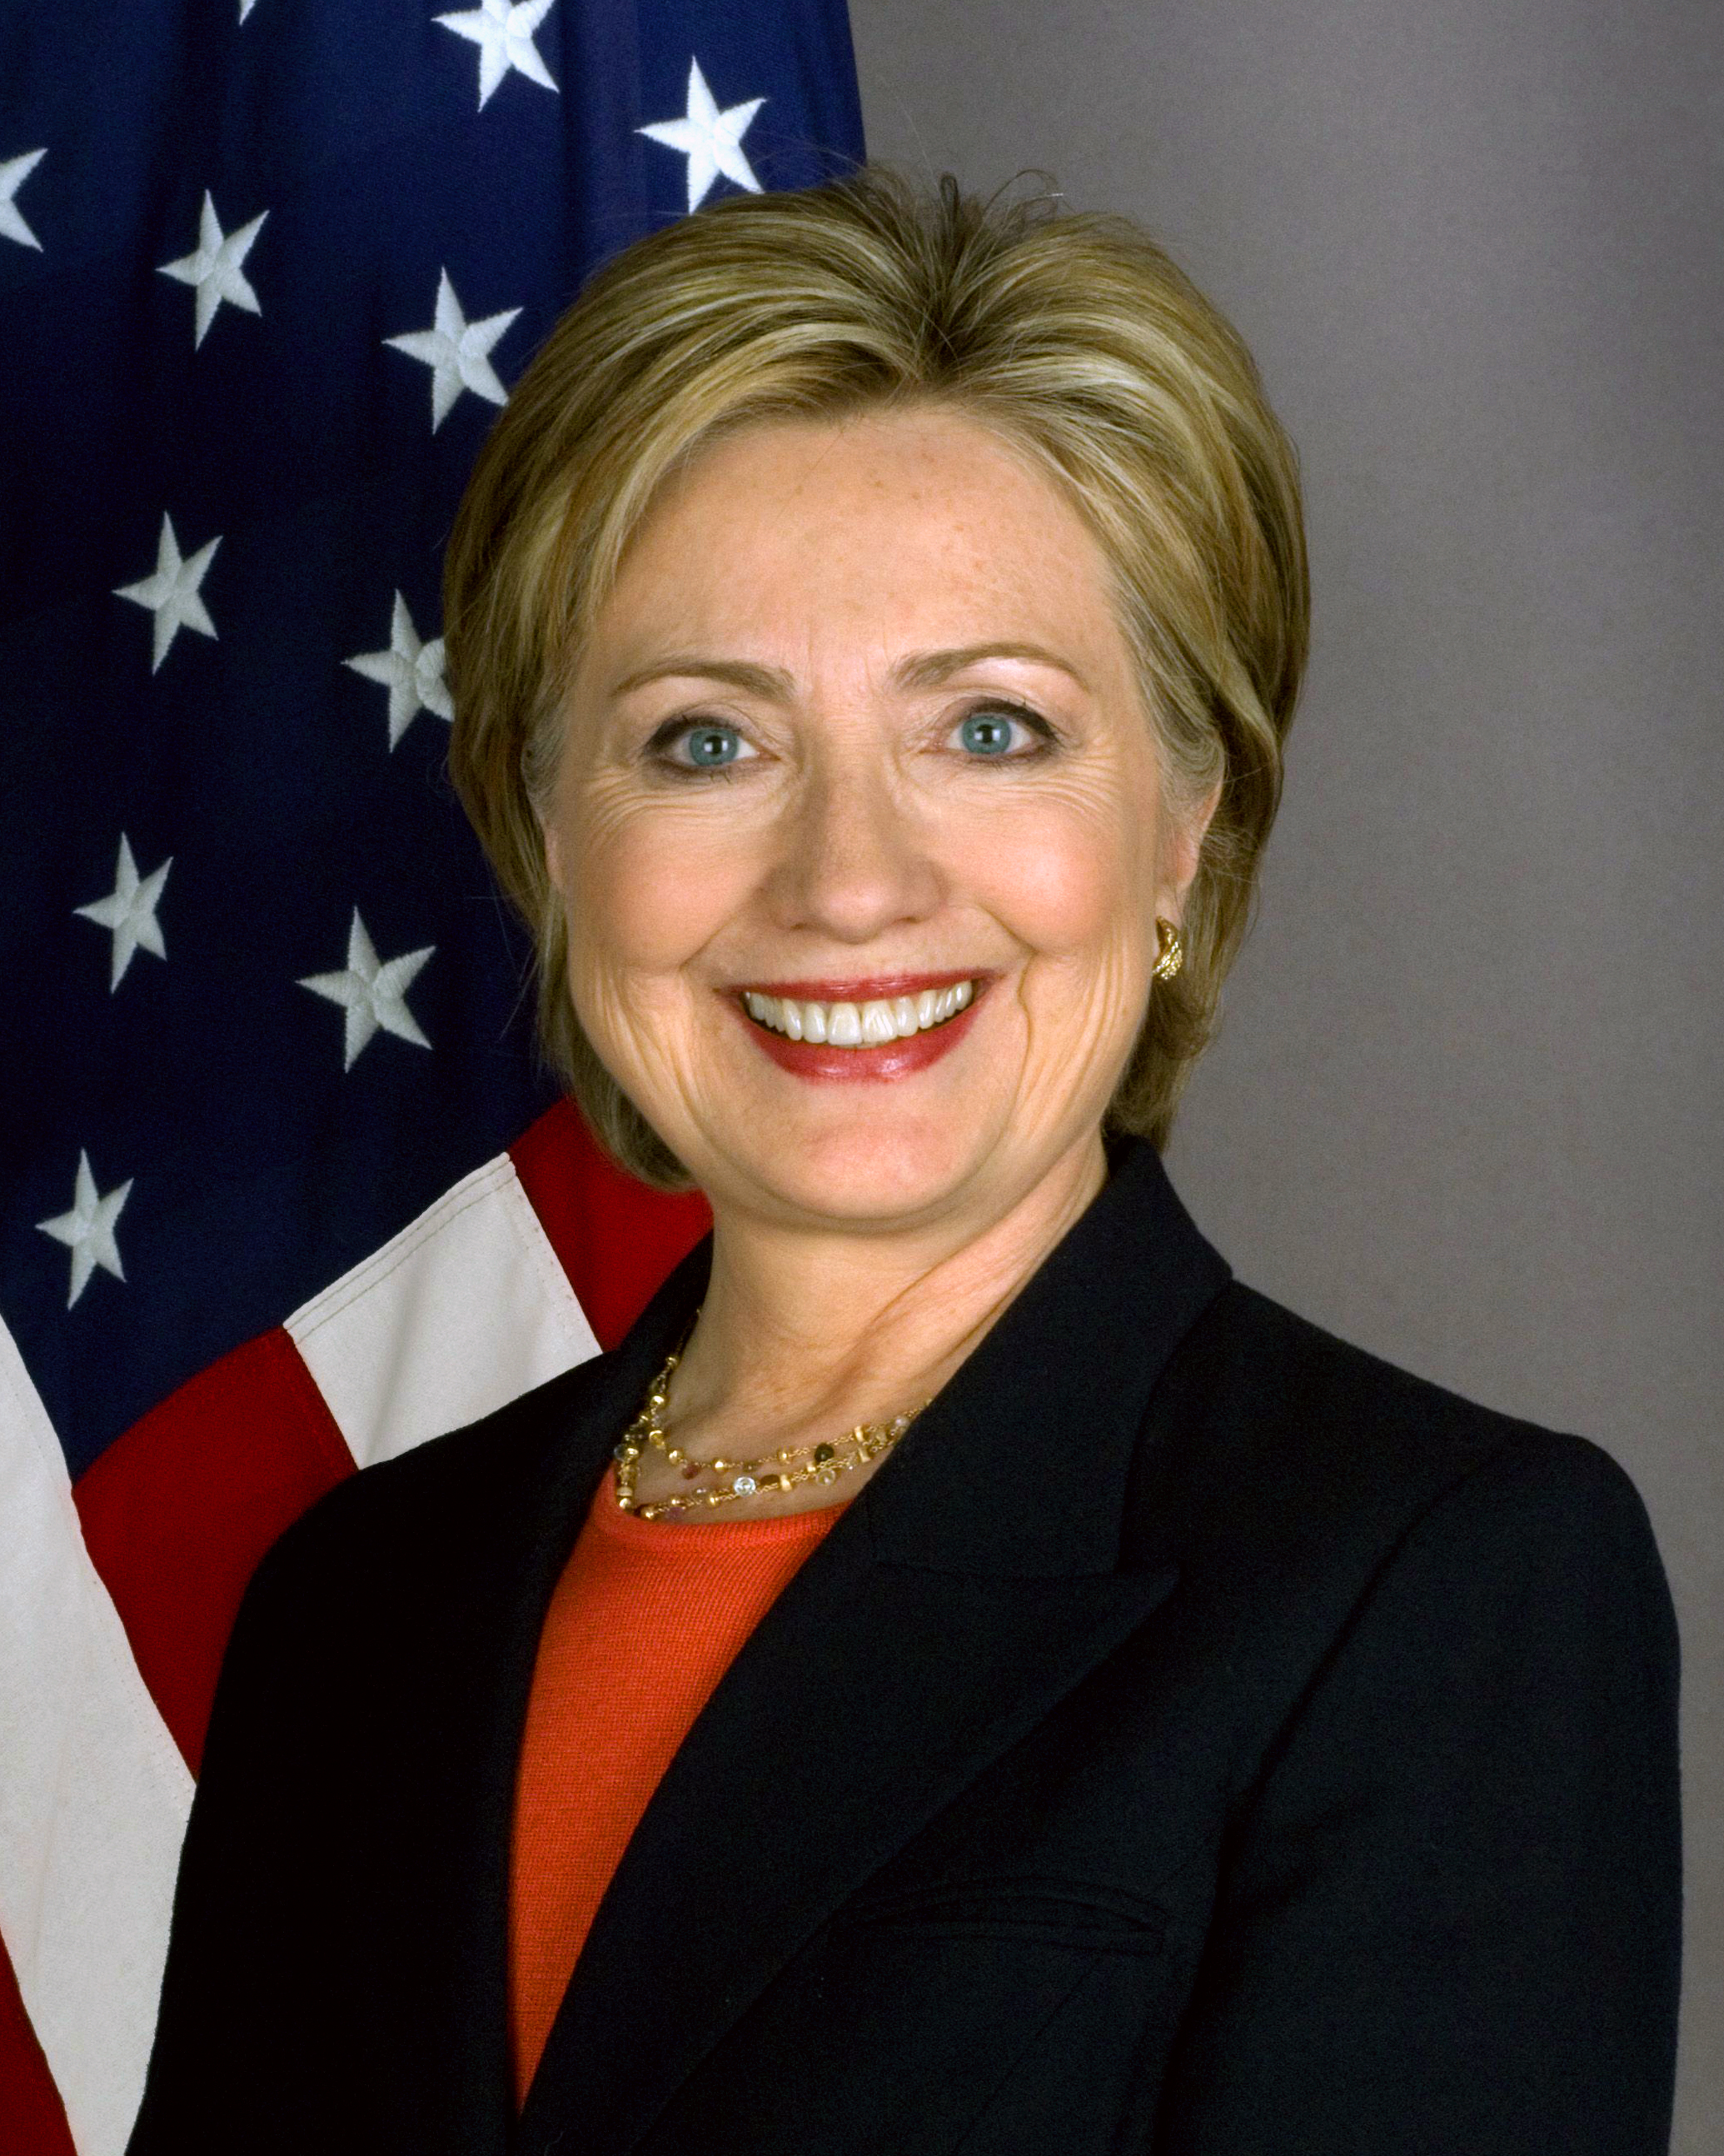 TAAL 0318 Hillary_Clinton_official_Secretary_of_State_portrait_crop.jpg